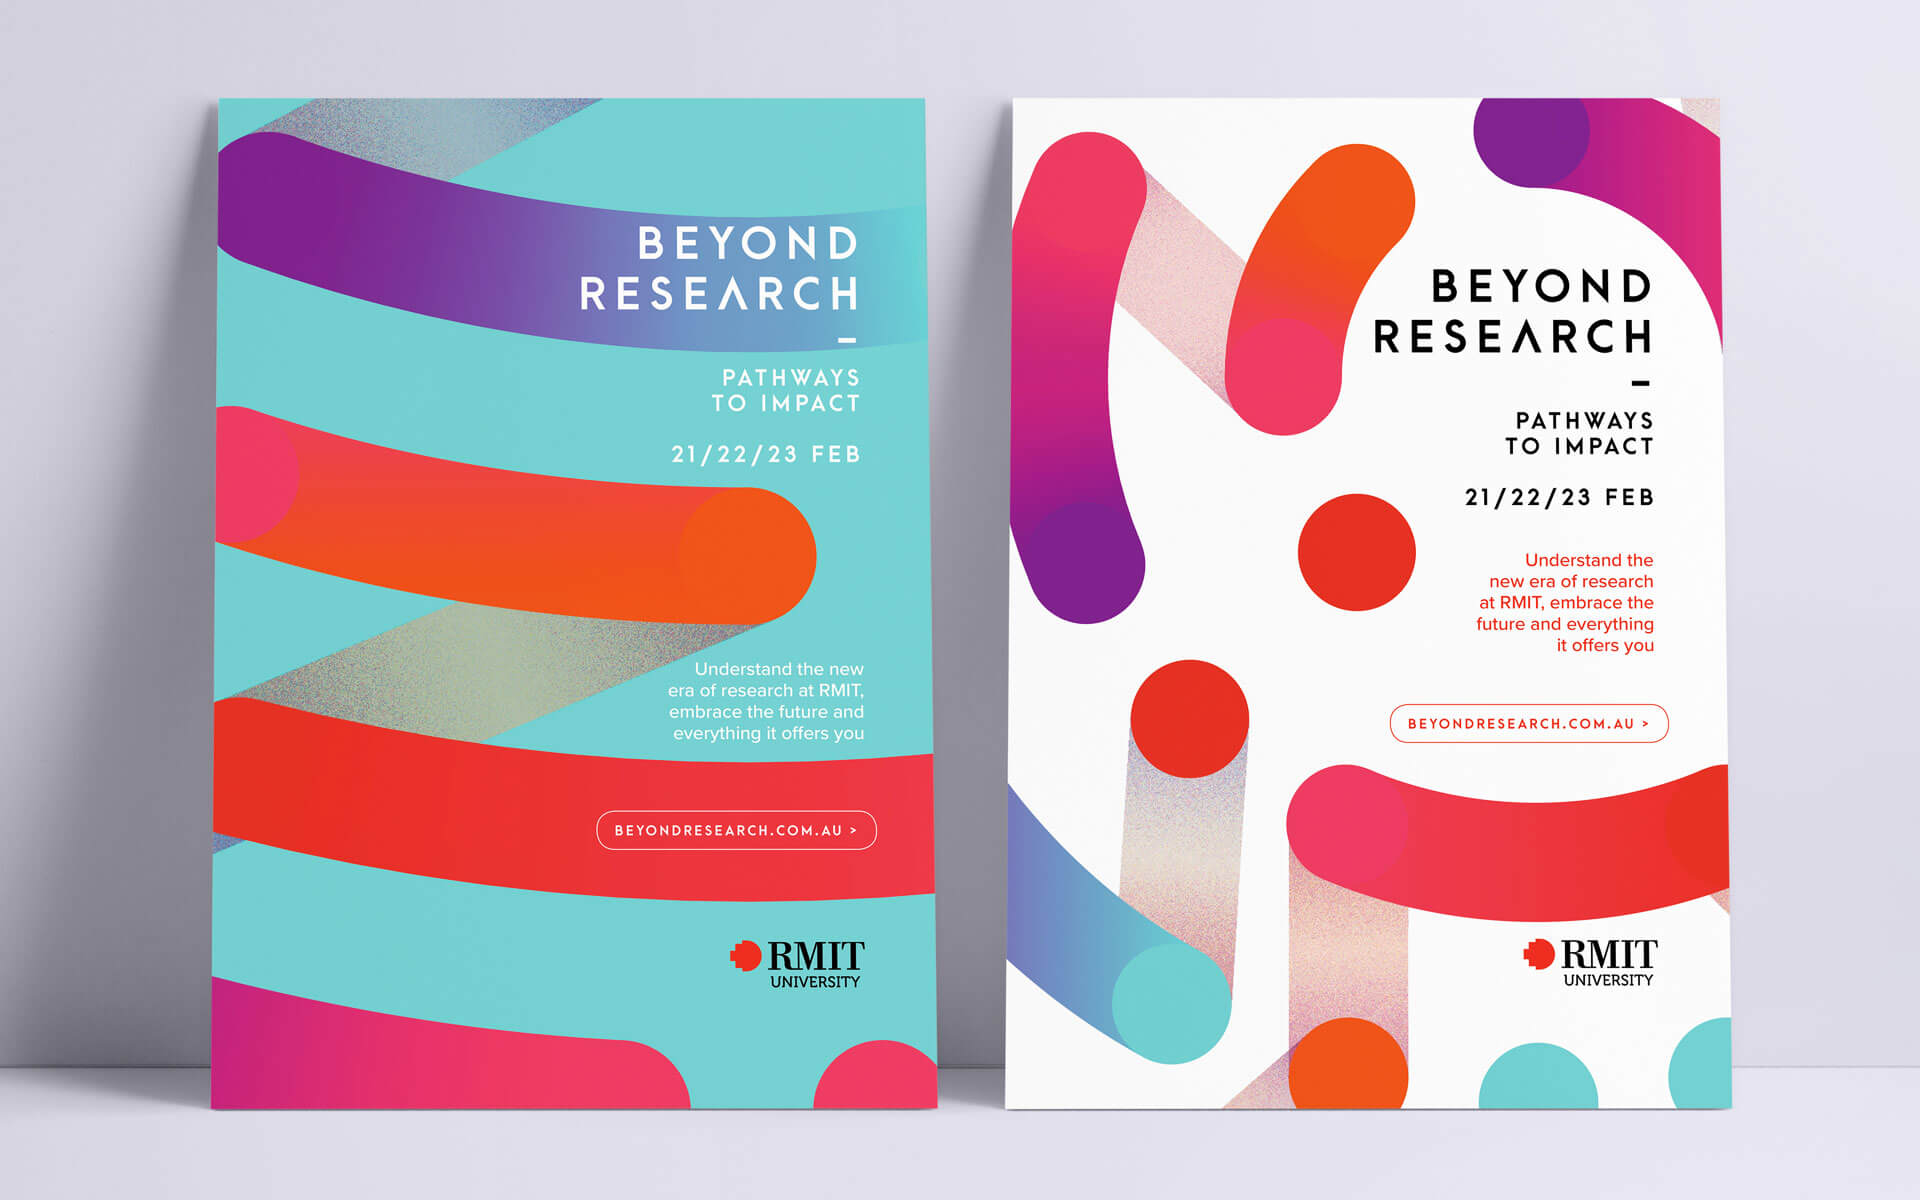 Beyond Research branding, poster designs